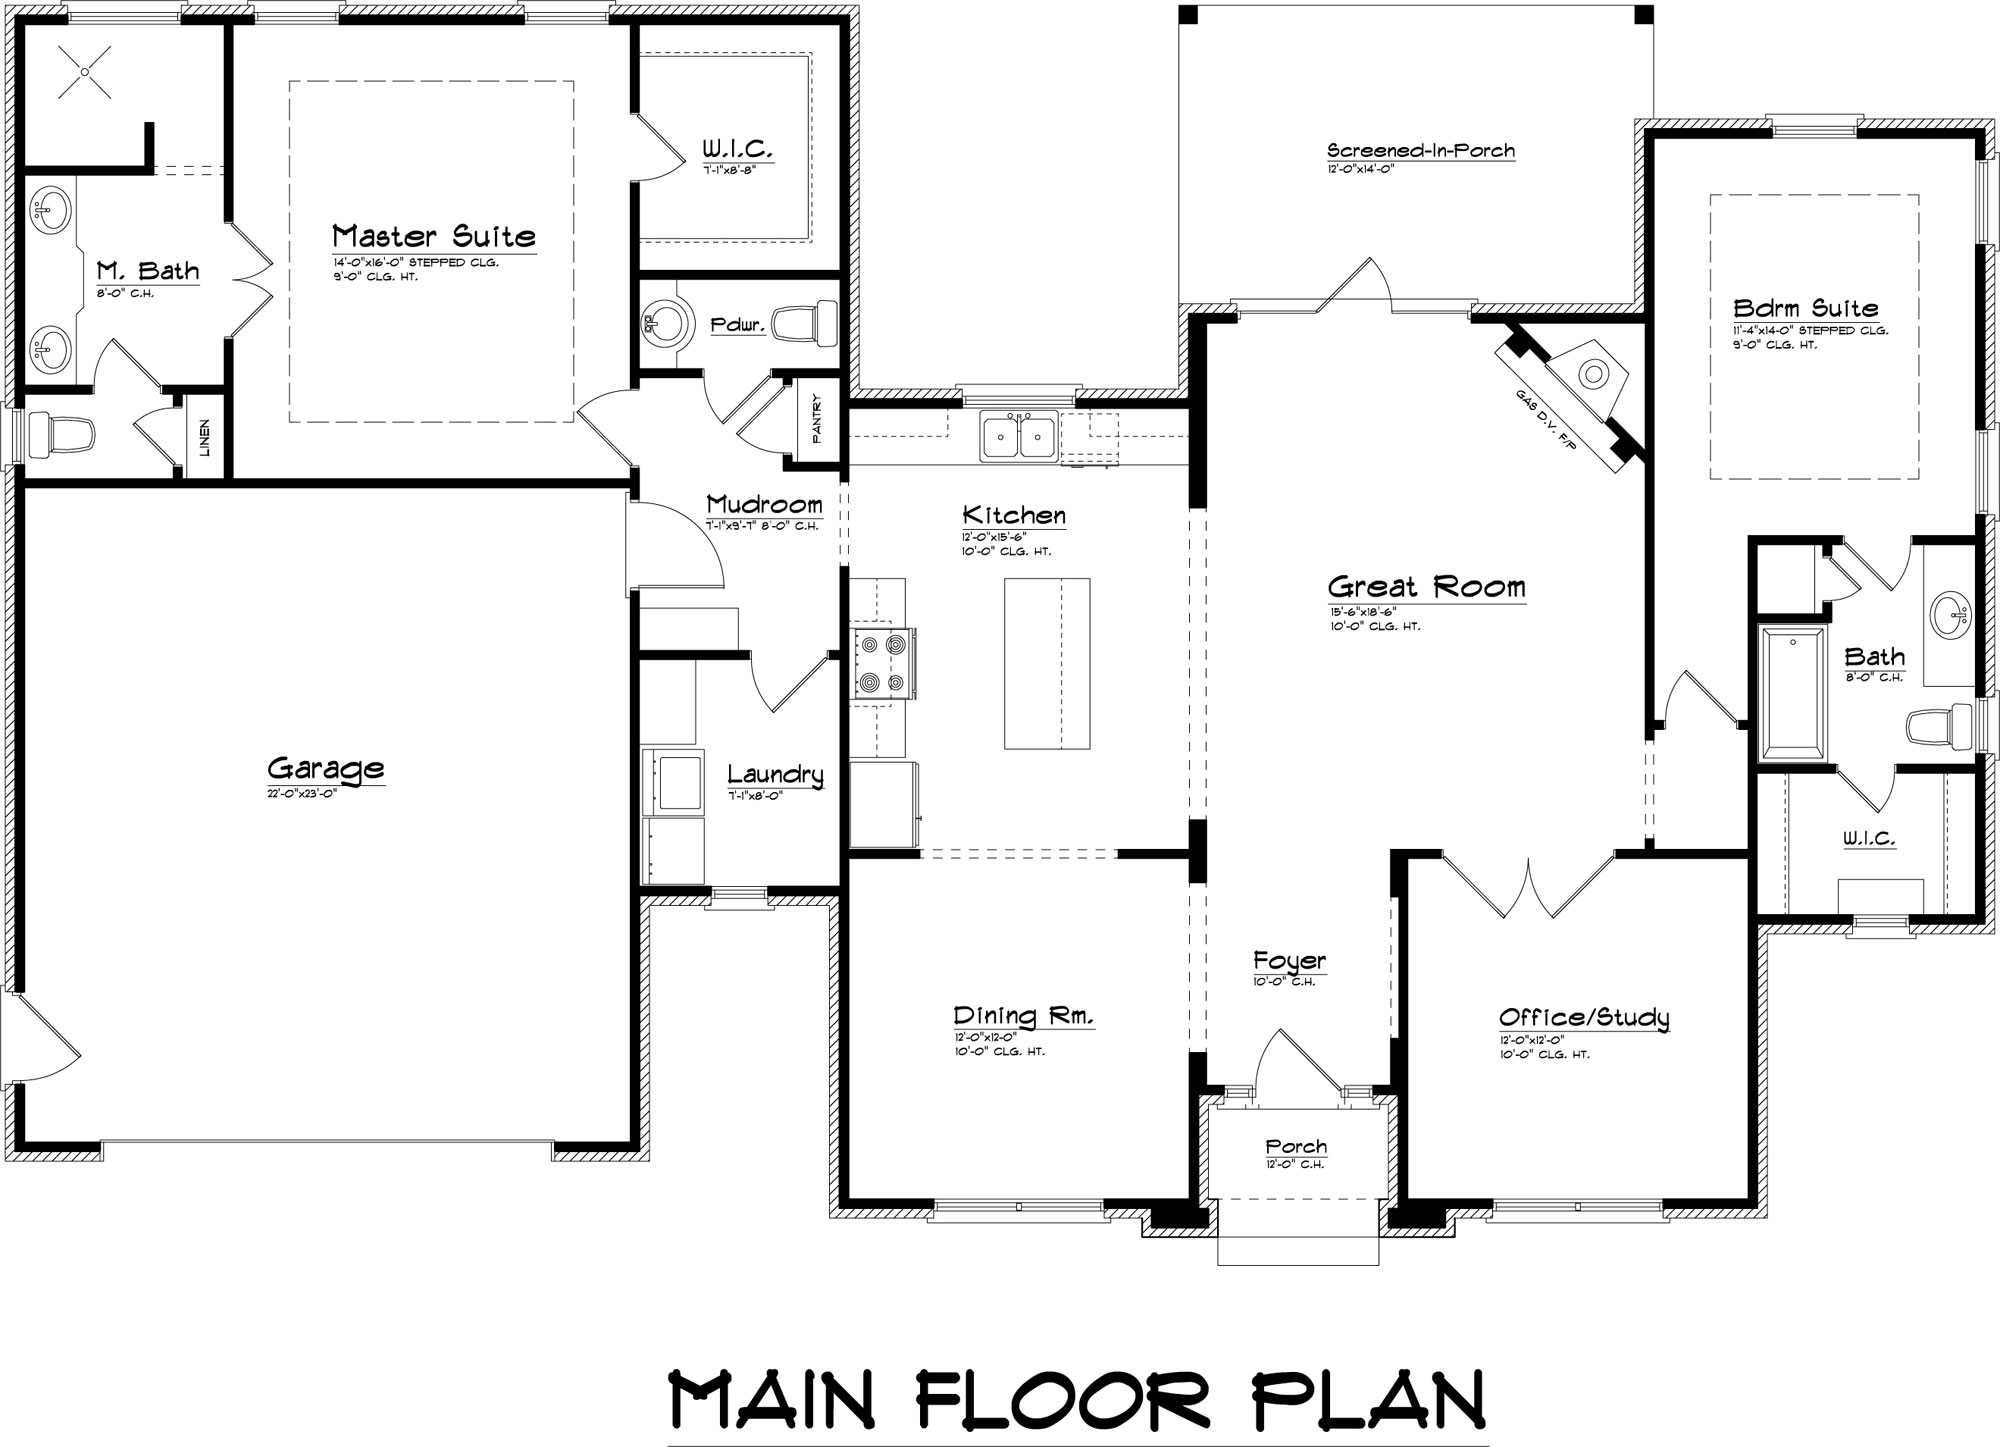 12 Best First Floor Master Bedroom For Your Home  Master suite